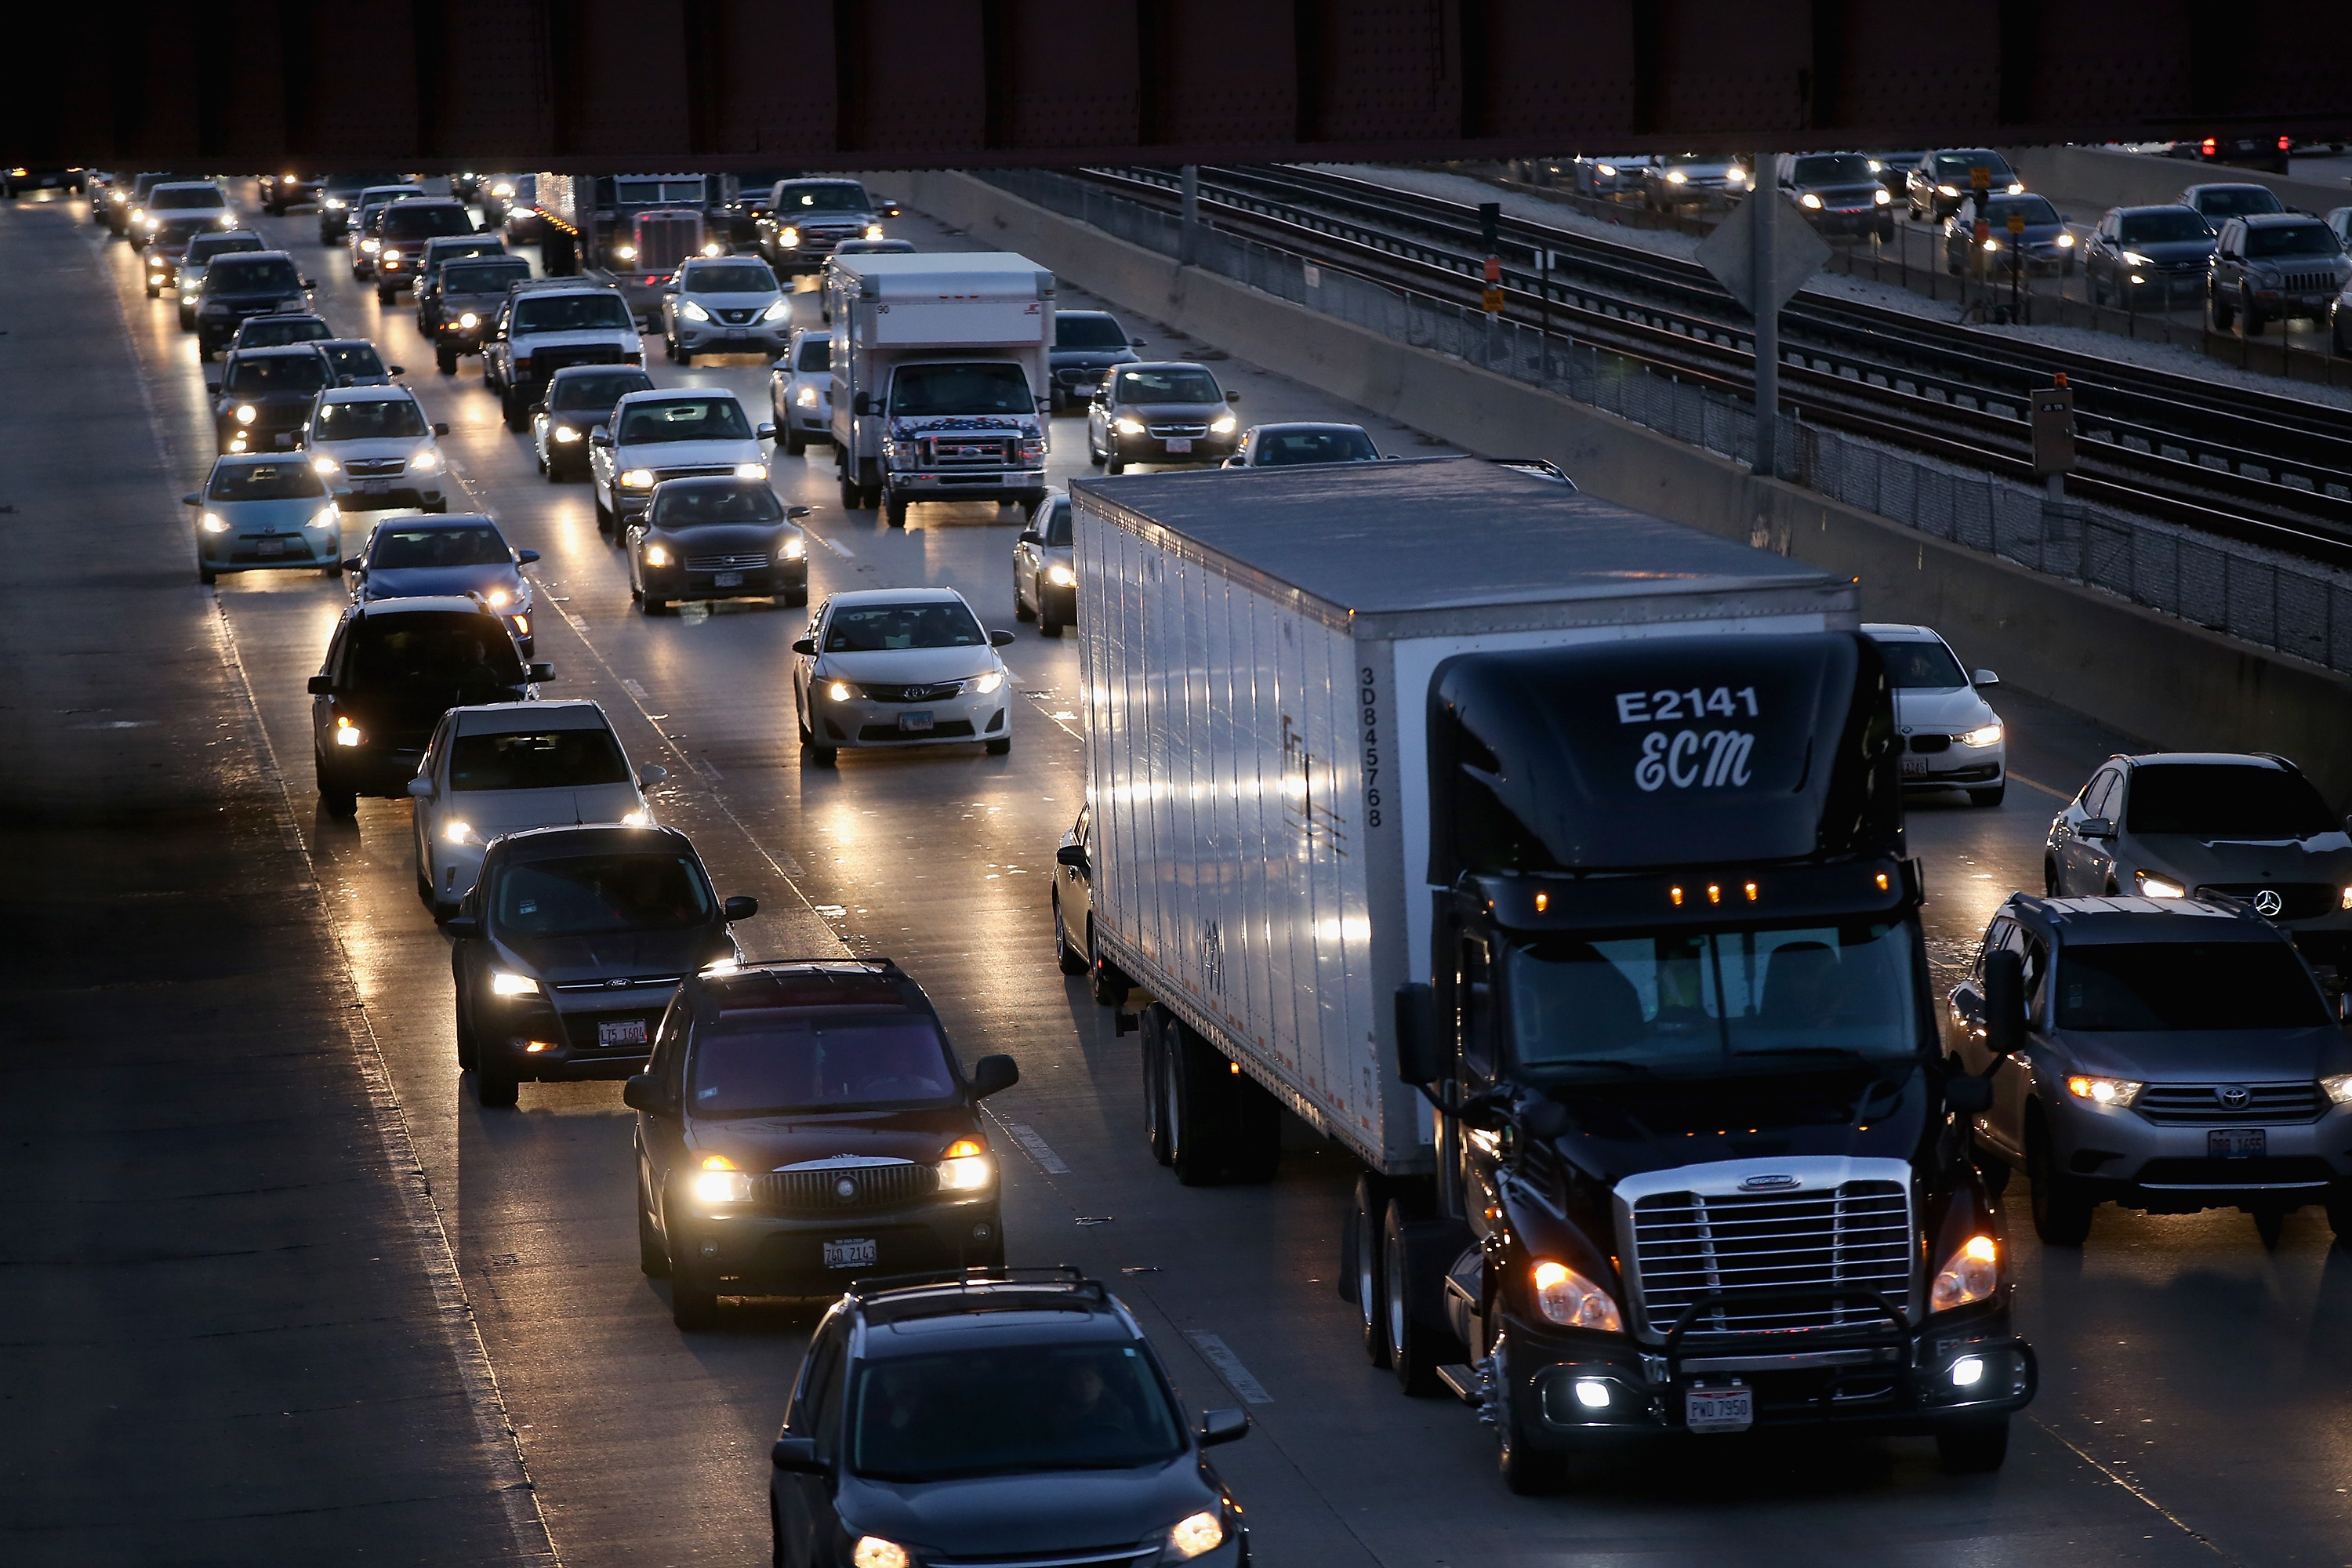 Cars and trucks on a Chicago-area expressway.